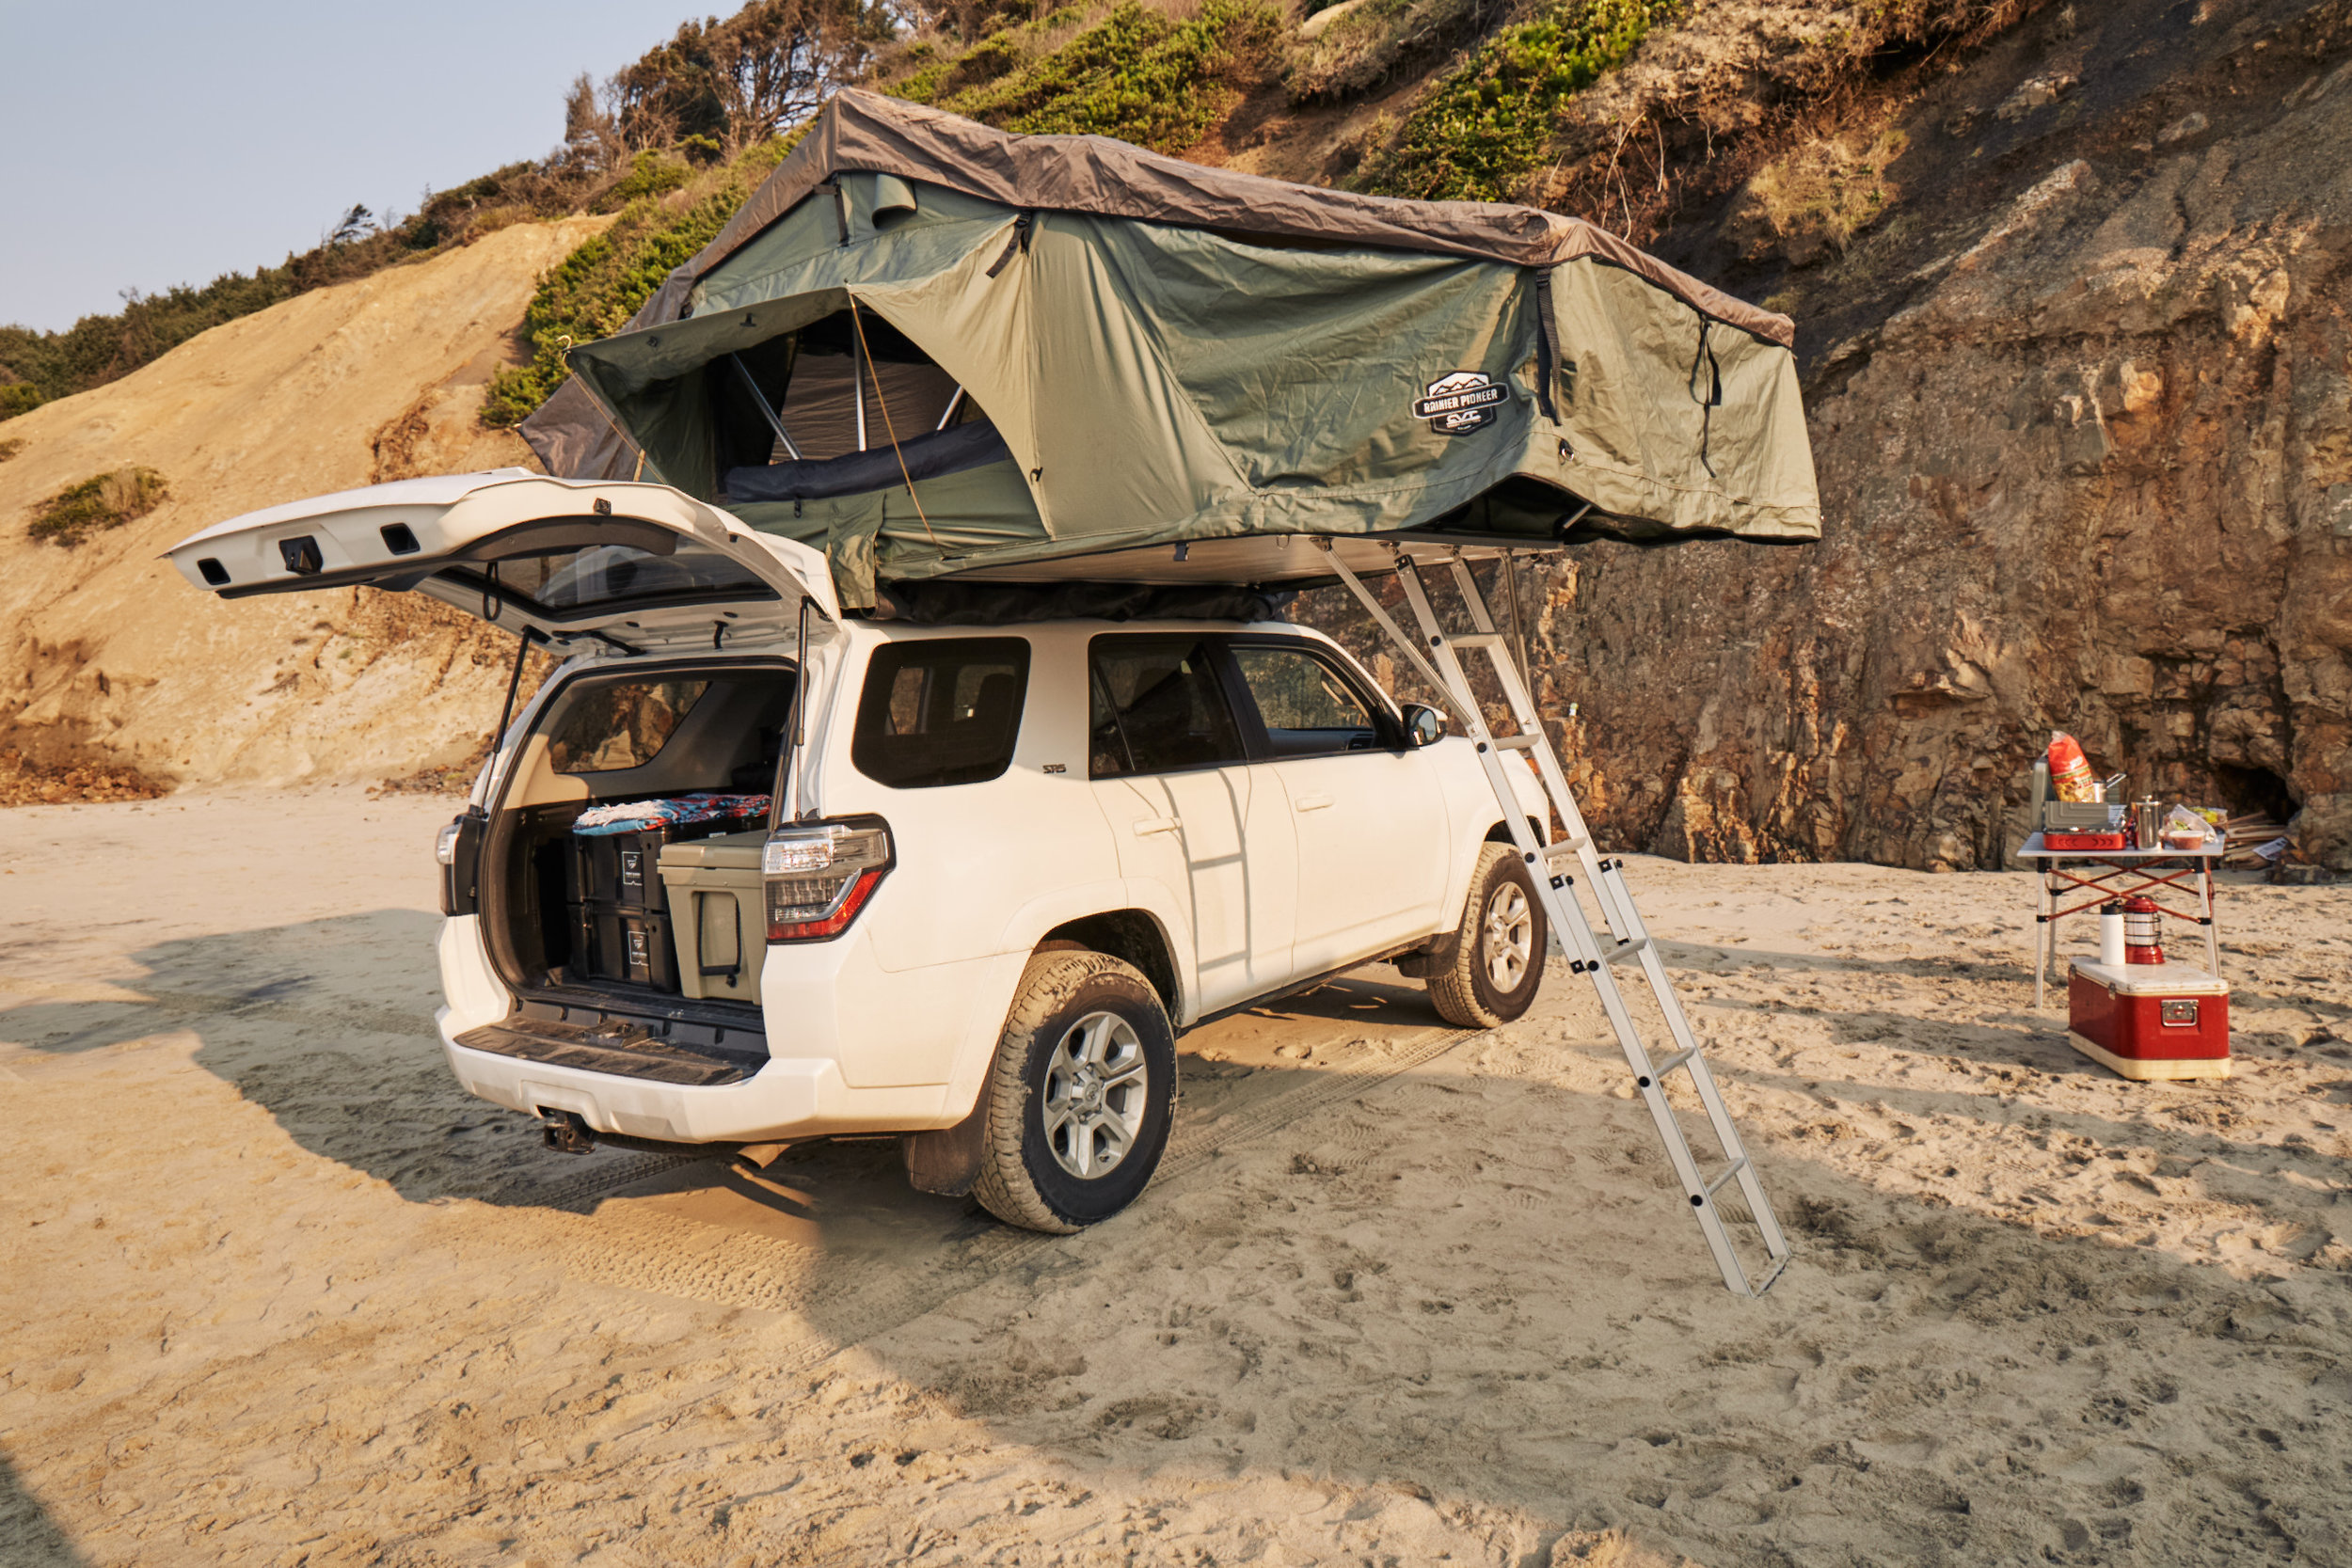 Cascadia Vehicle Tents Mt. Rainer Stargazer Rooftop tent x Wonderland Expeditions Toyota 4Runner - a match made for backcountry fun.